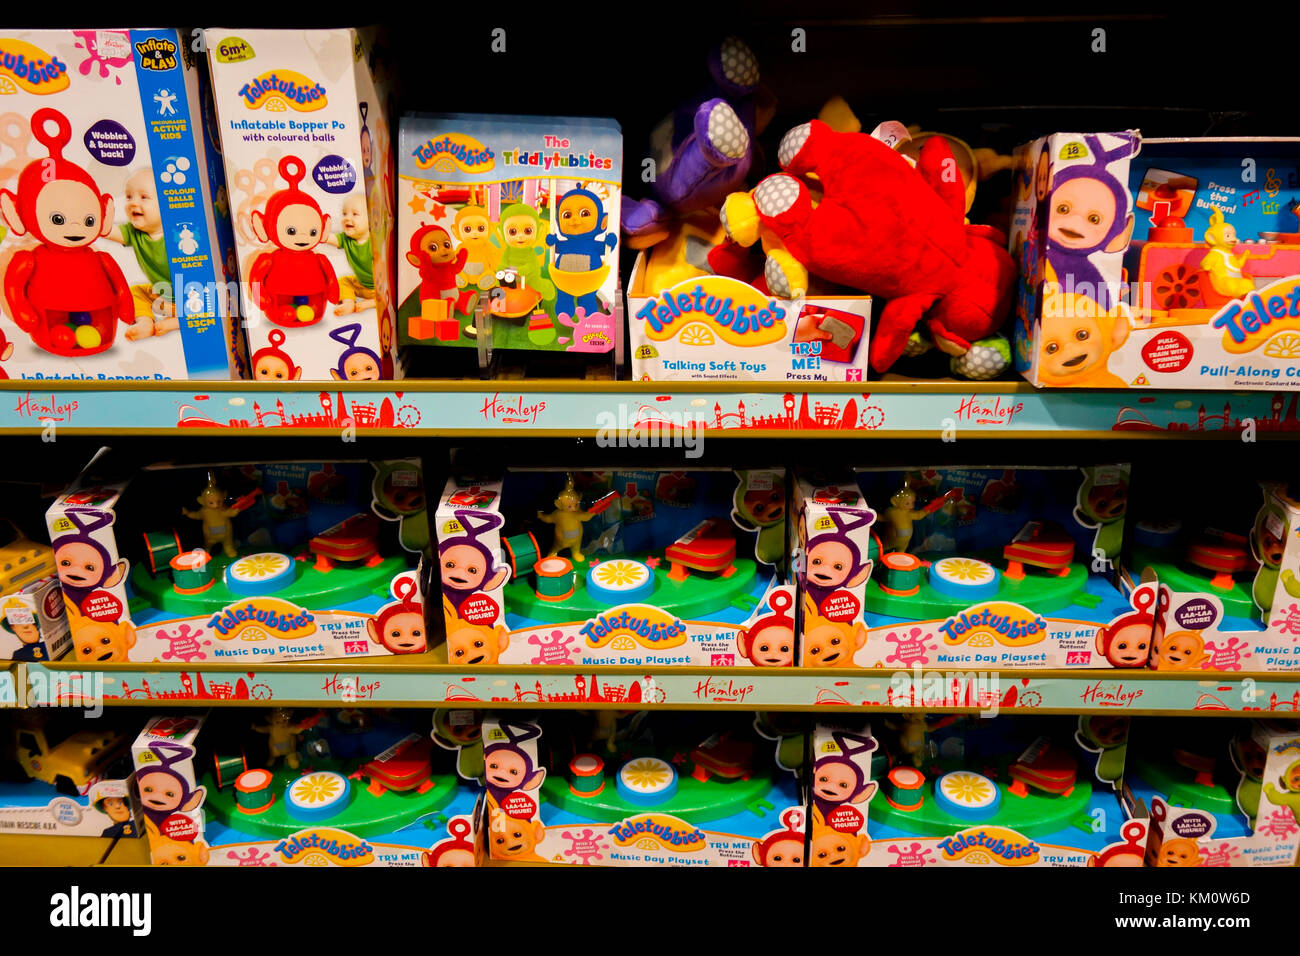 Toys From Hamleys : Toy shop stock photos images alamy